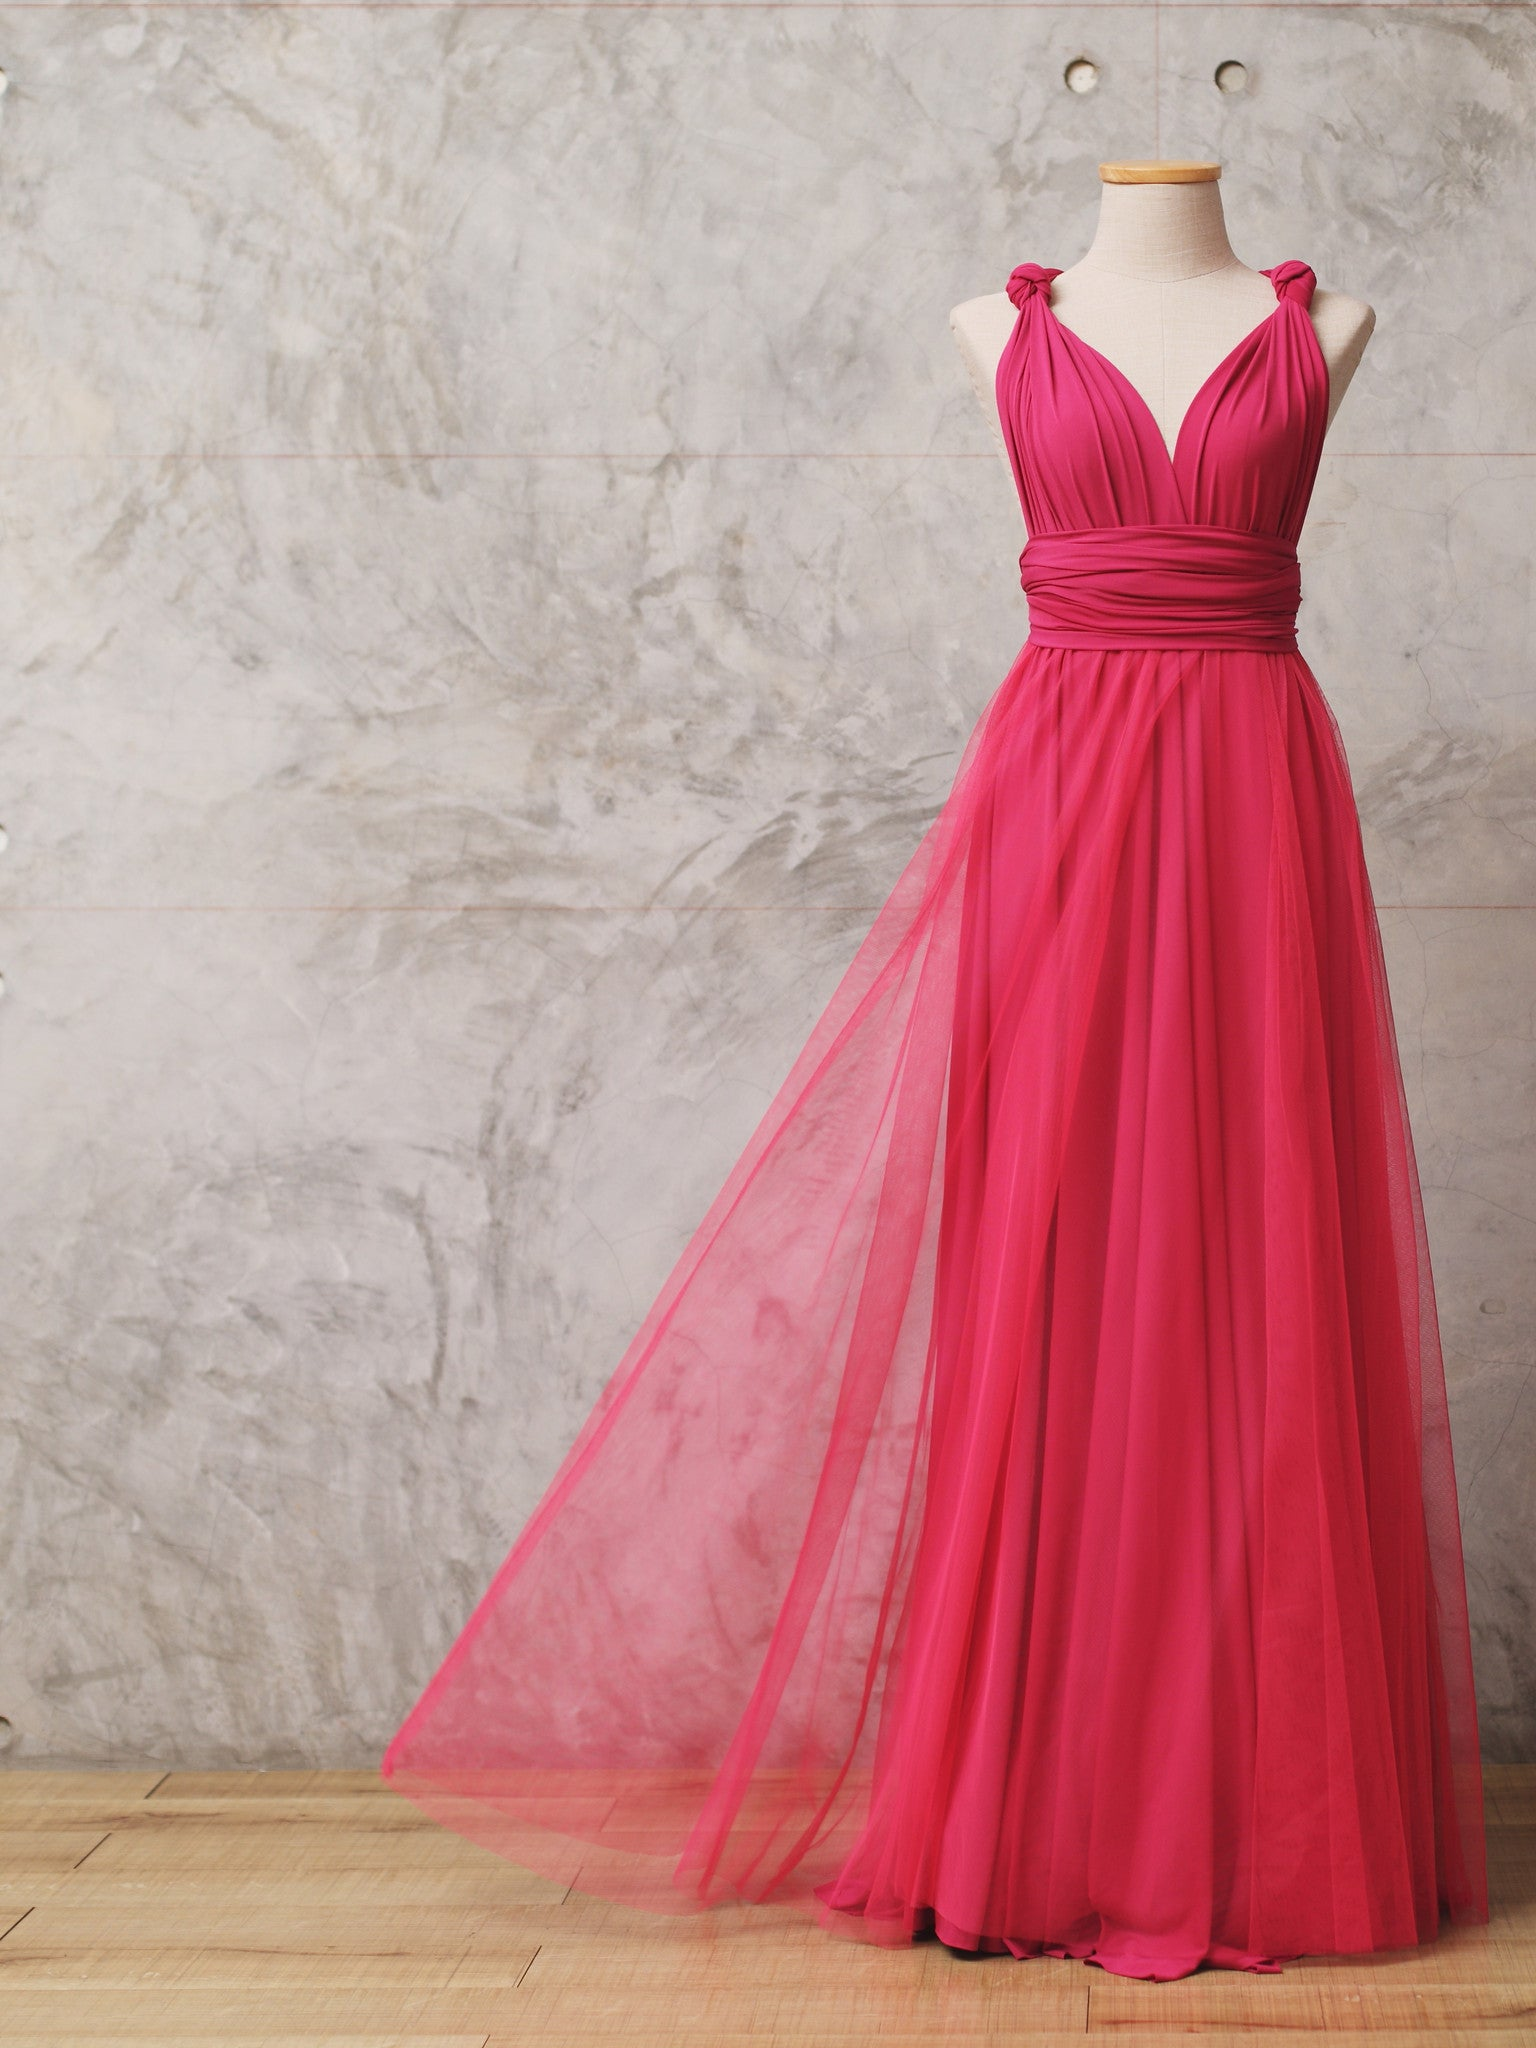 f998b60d8ef6a ROUGE   Tulle Convertible Dress   Bridesmaid Dress - Zizway